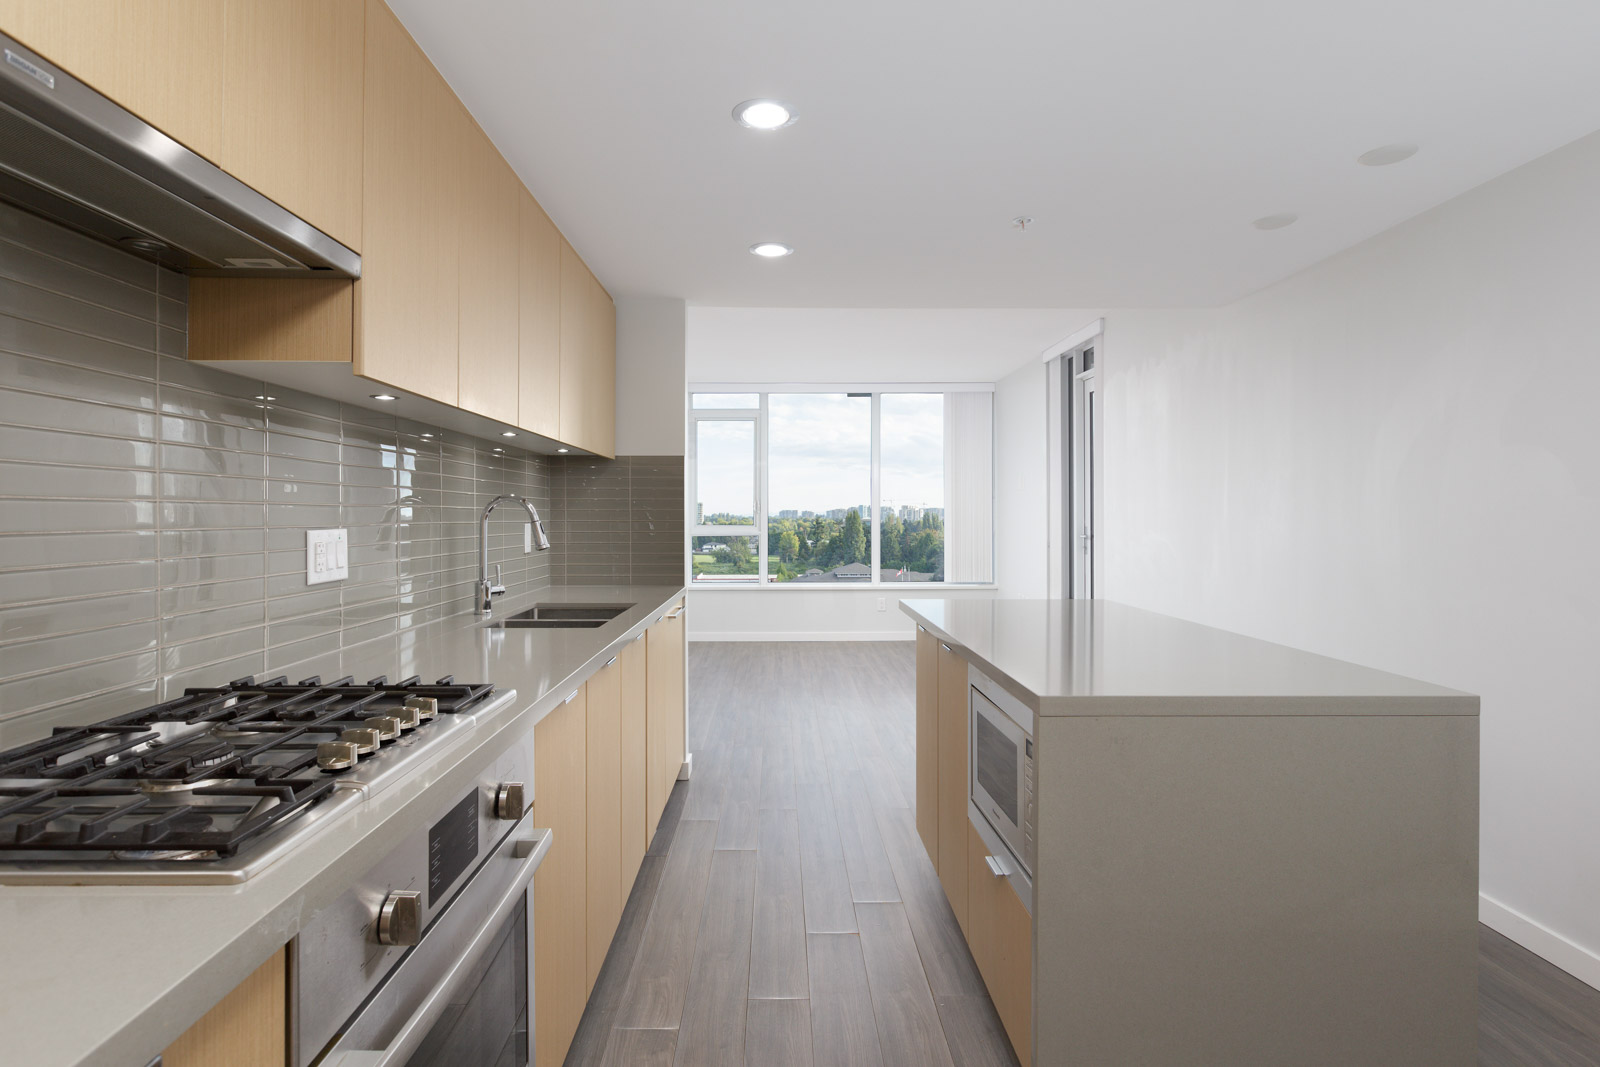 kitchen inside Richmond condo with living room in background